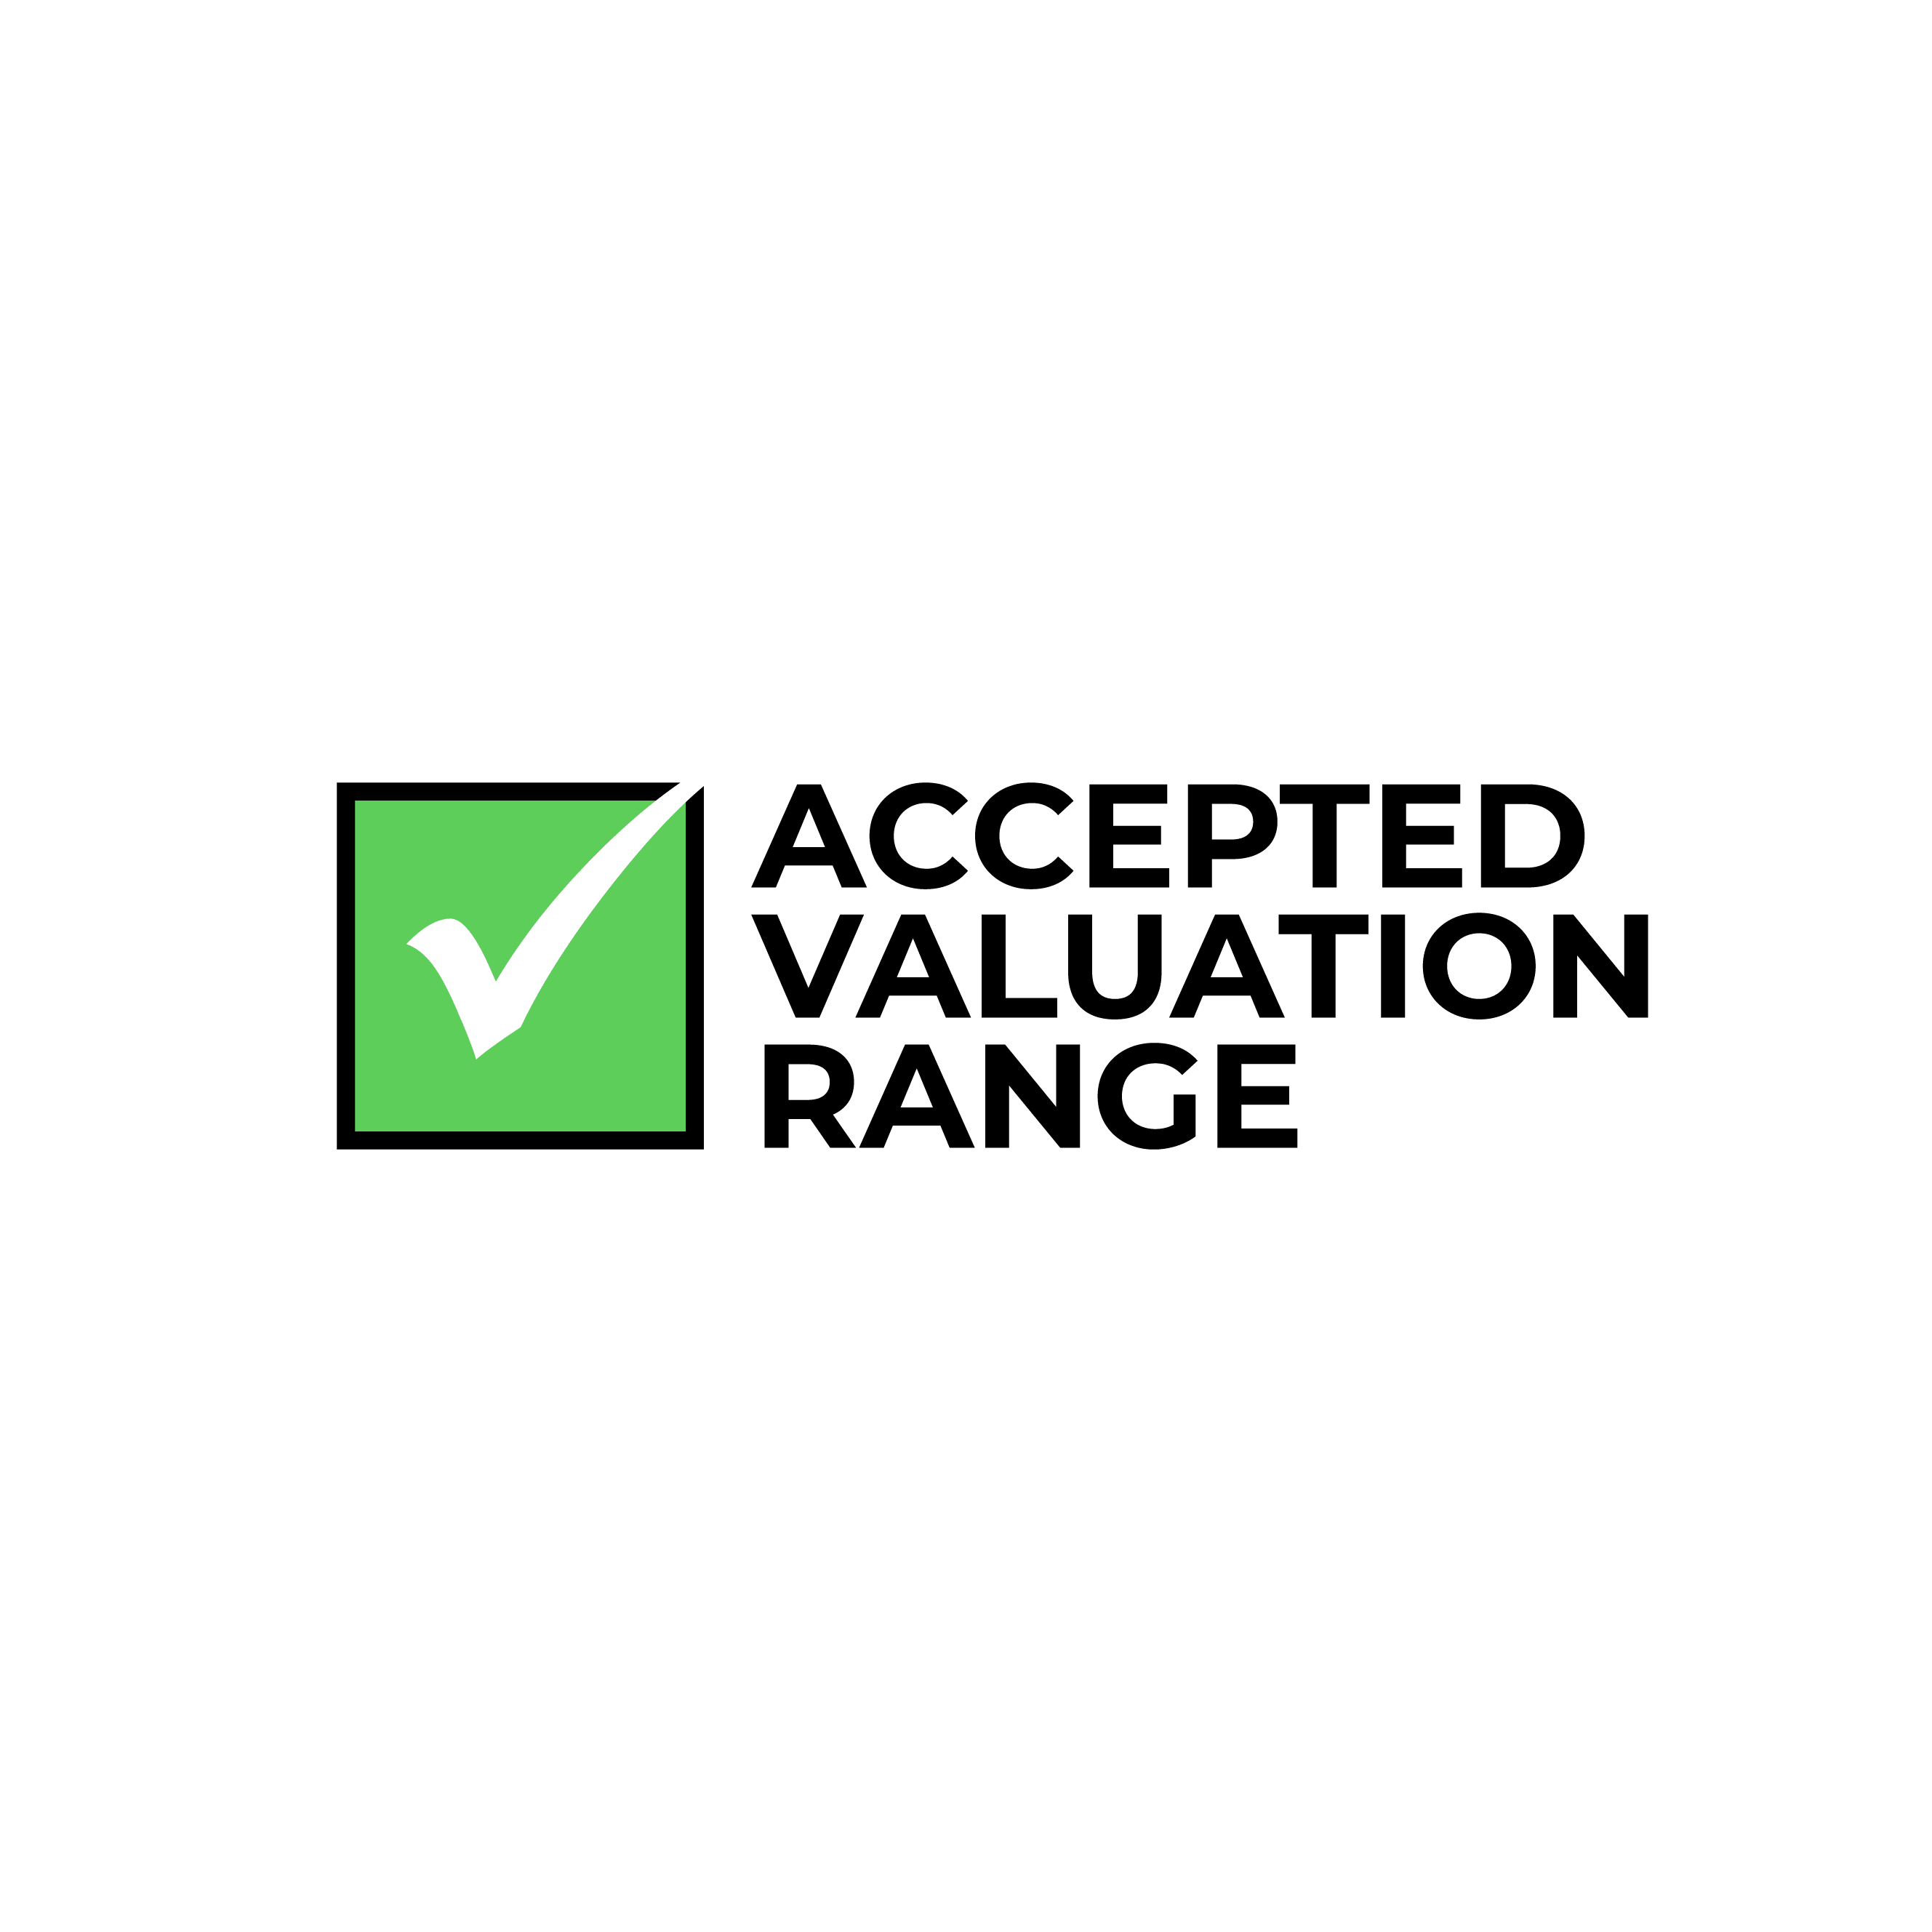 Accepted Valuation Range